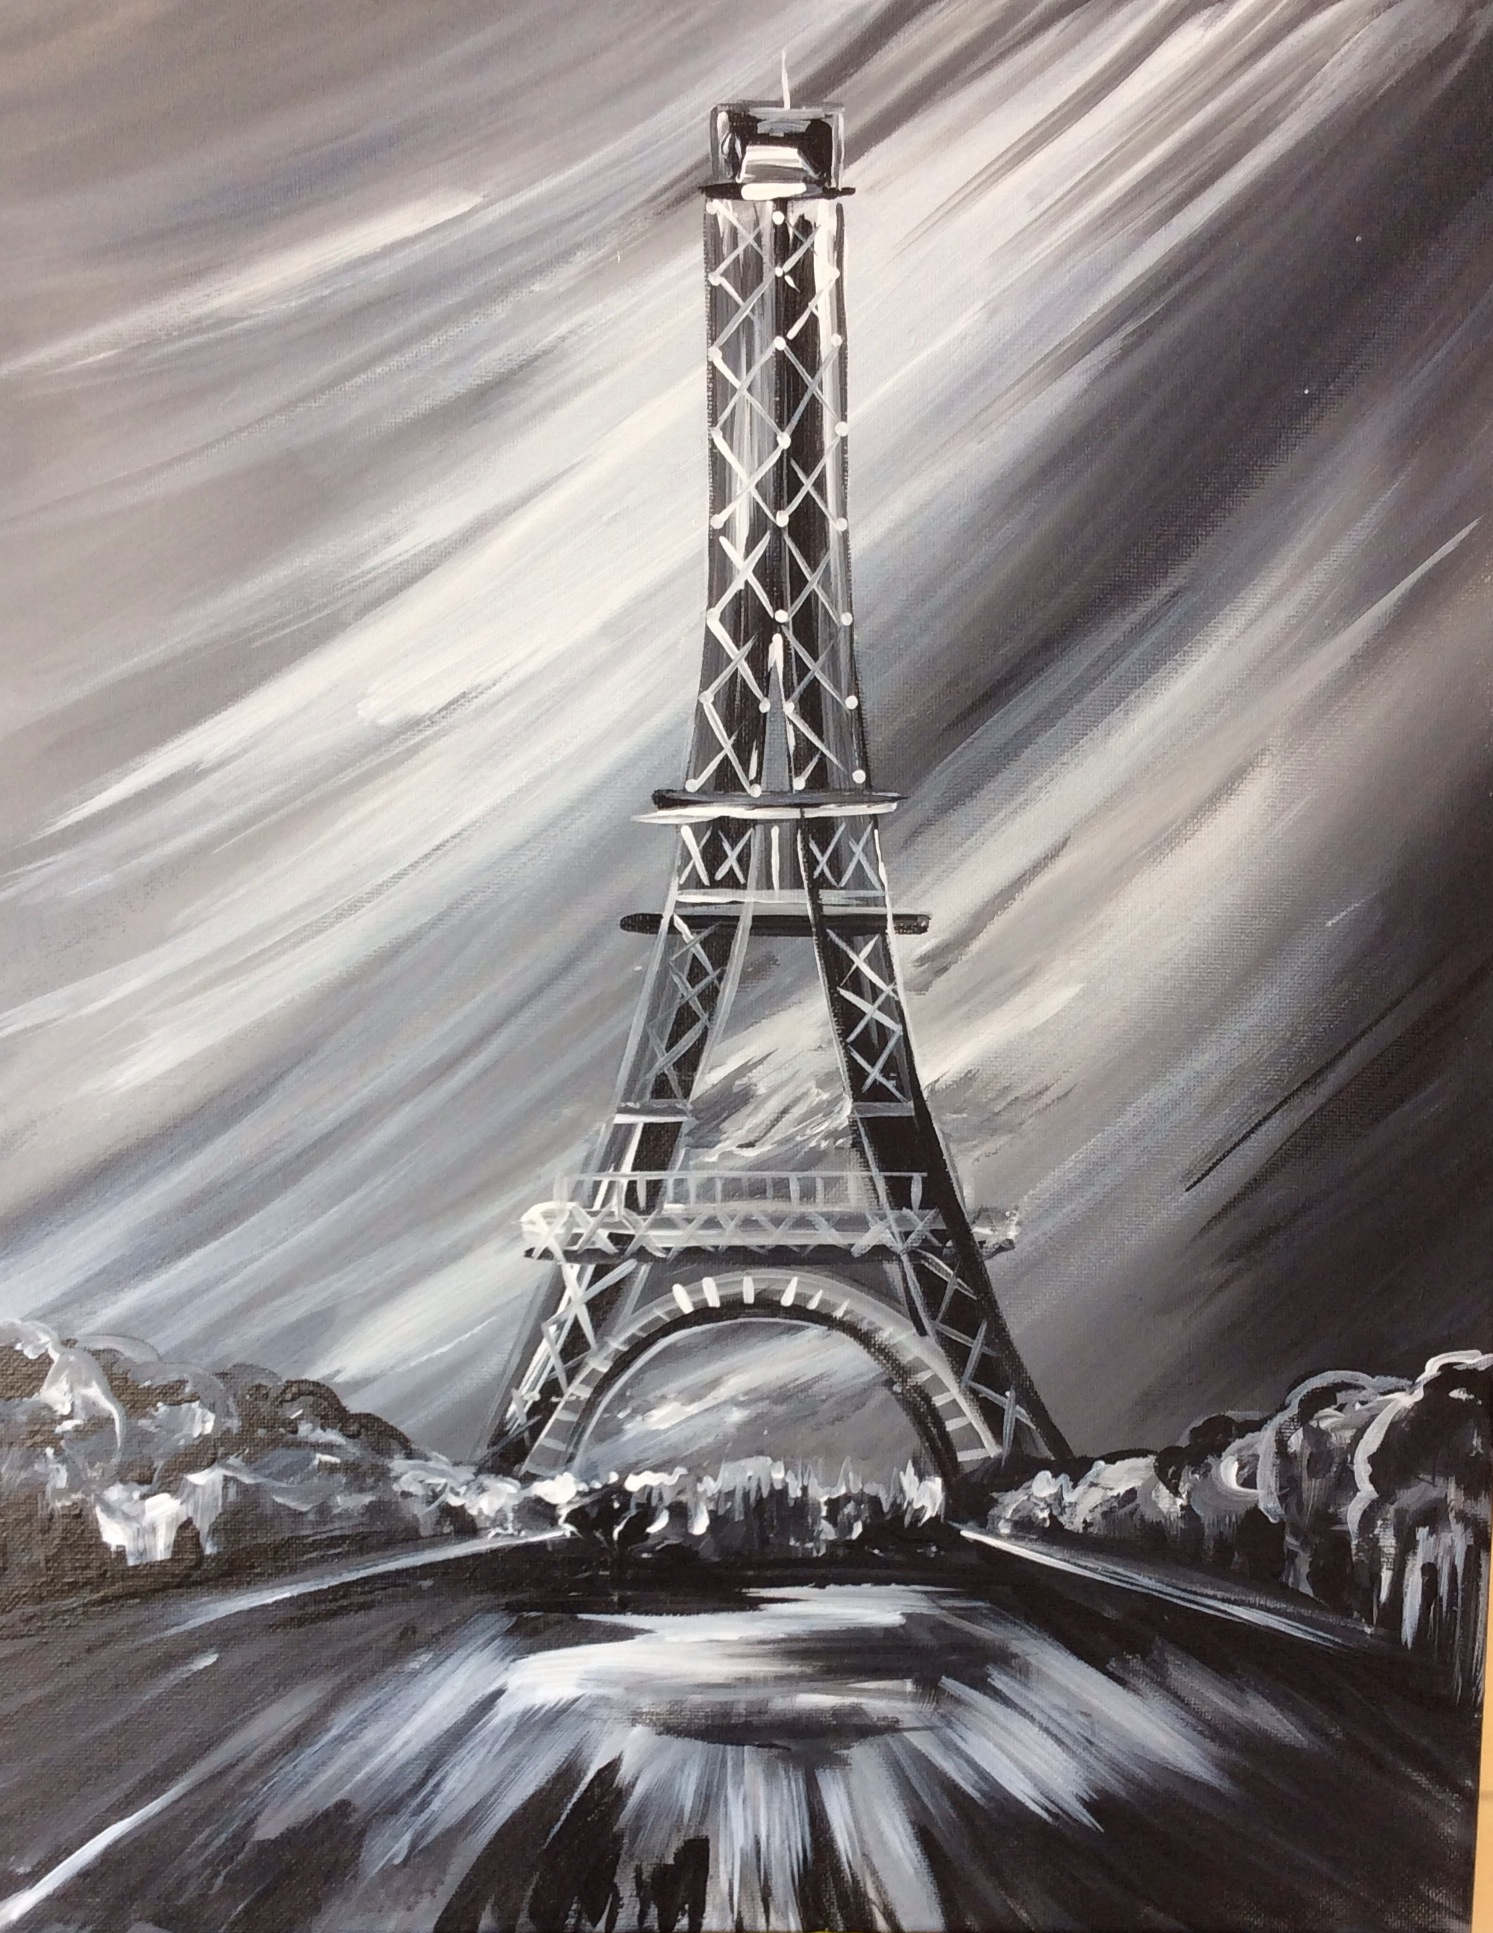 Eiffel Tower at Night - 2 Hours